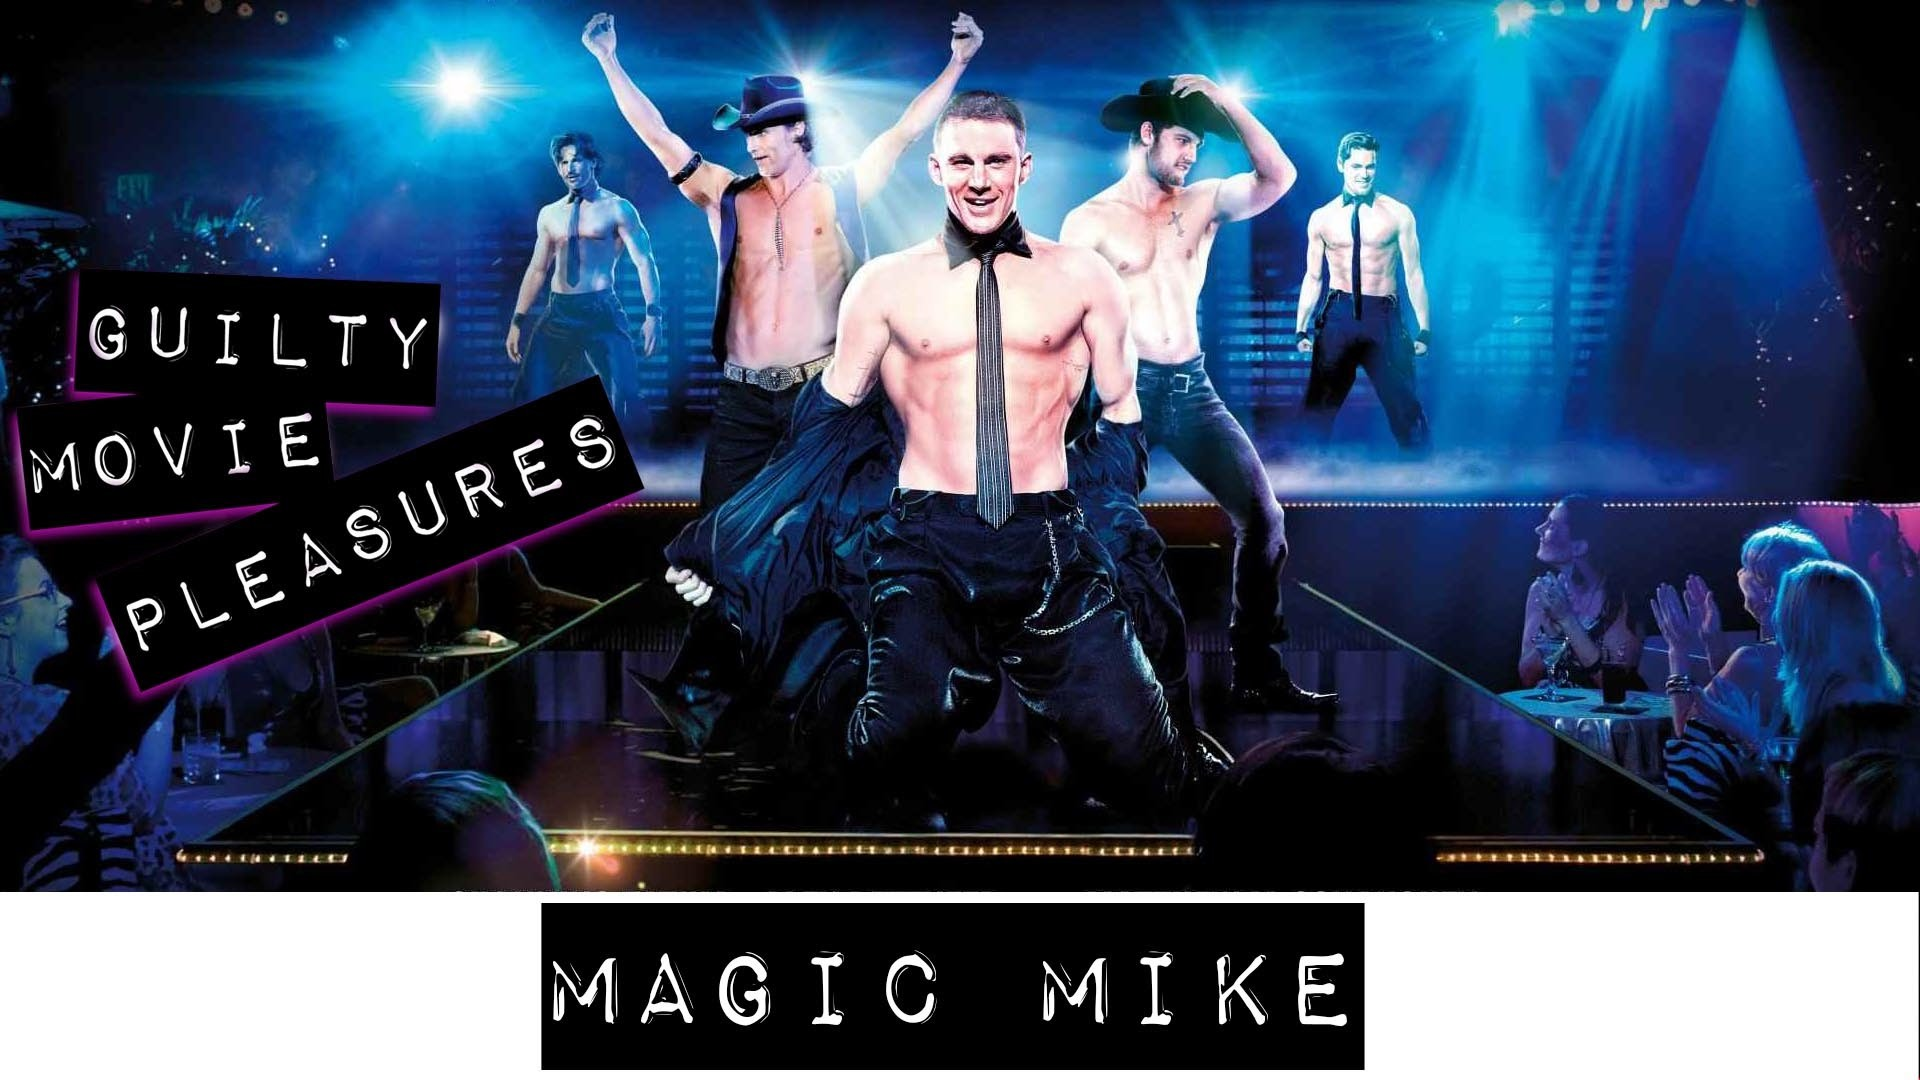 """Magic Mike (2012) w/ guests Thunder From Down Under… is a """"Guilty Movie  Pleasure"""""""